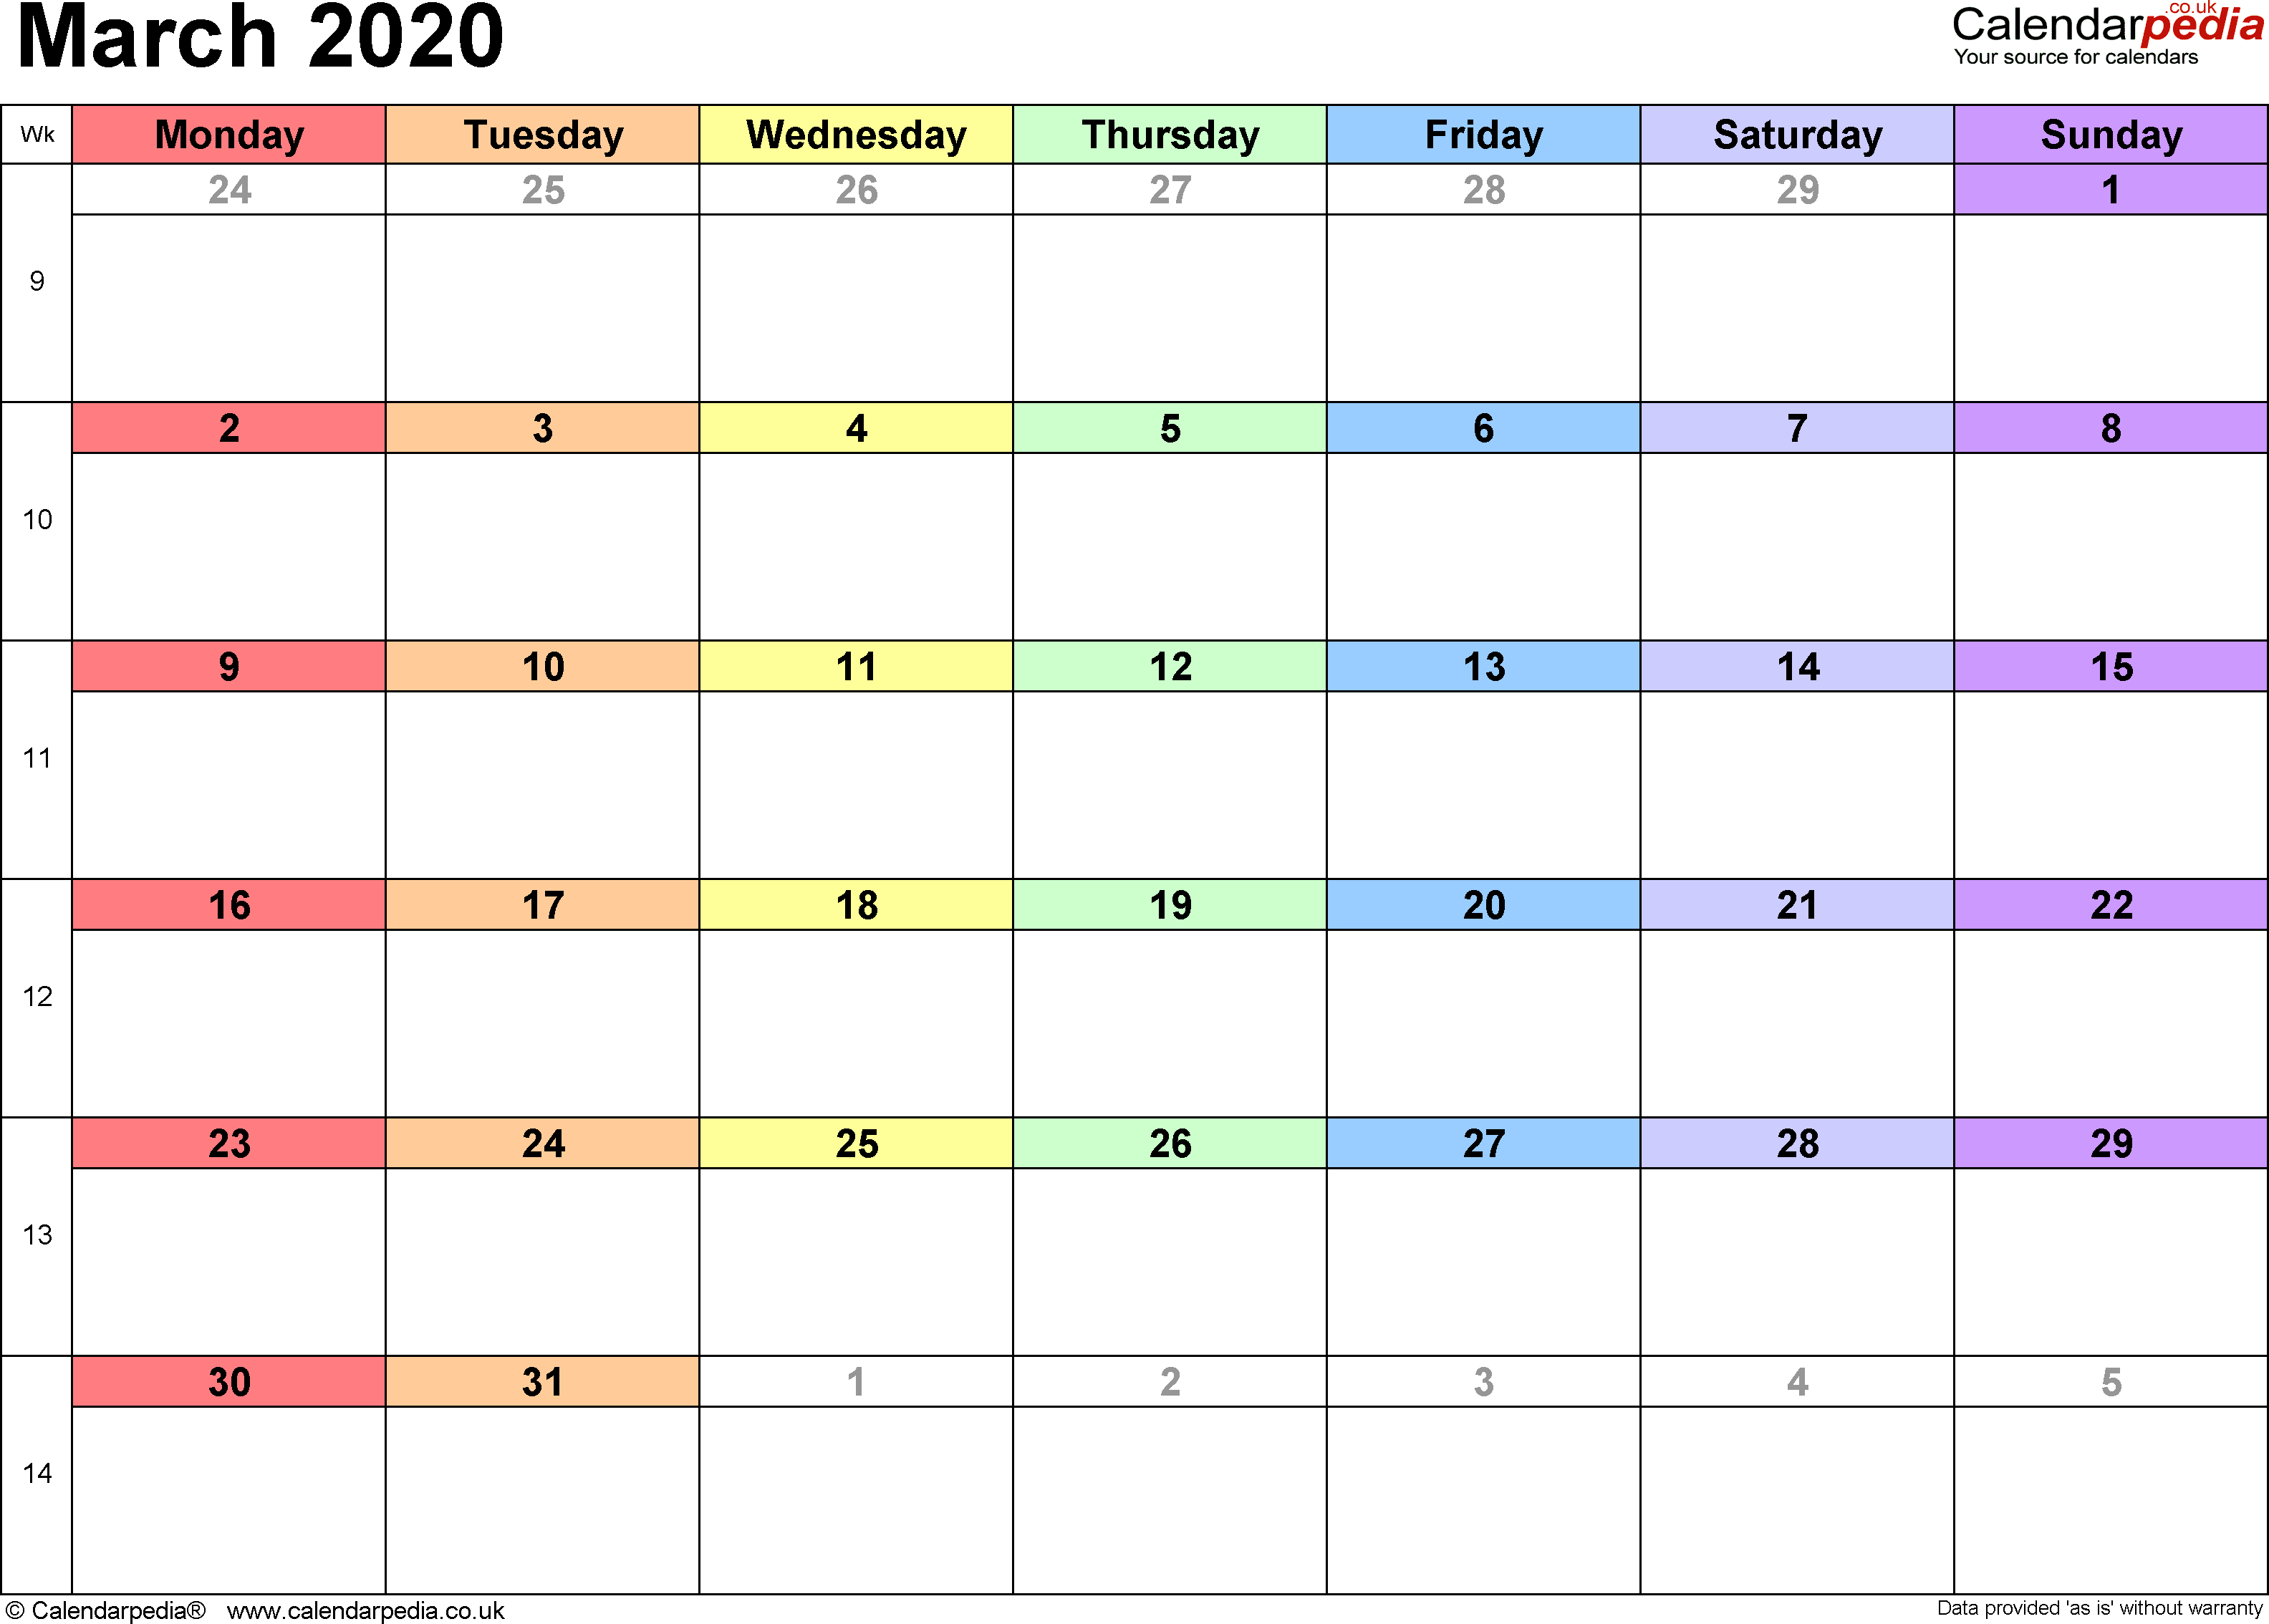 Calendar March 2020, landscape orientation, 1 page, with UK bank holidays and week numbers